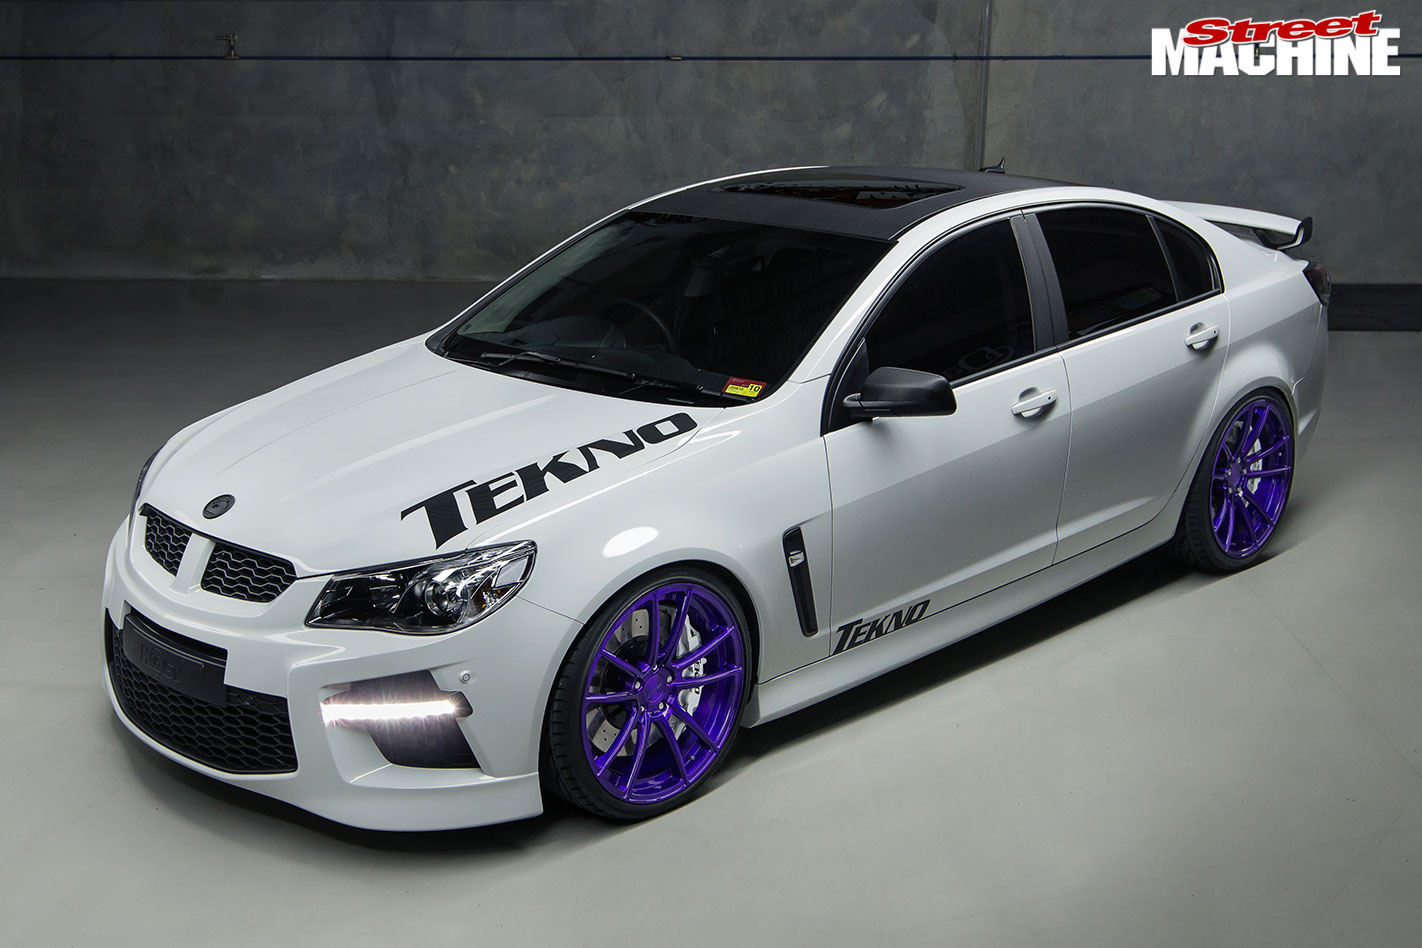 Tekno Performance's Blown 2013 HSV Clubsport R8 SV & blown